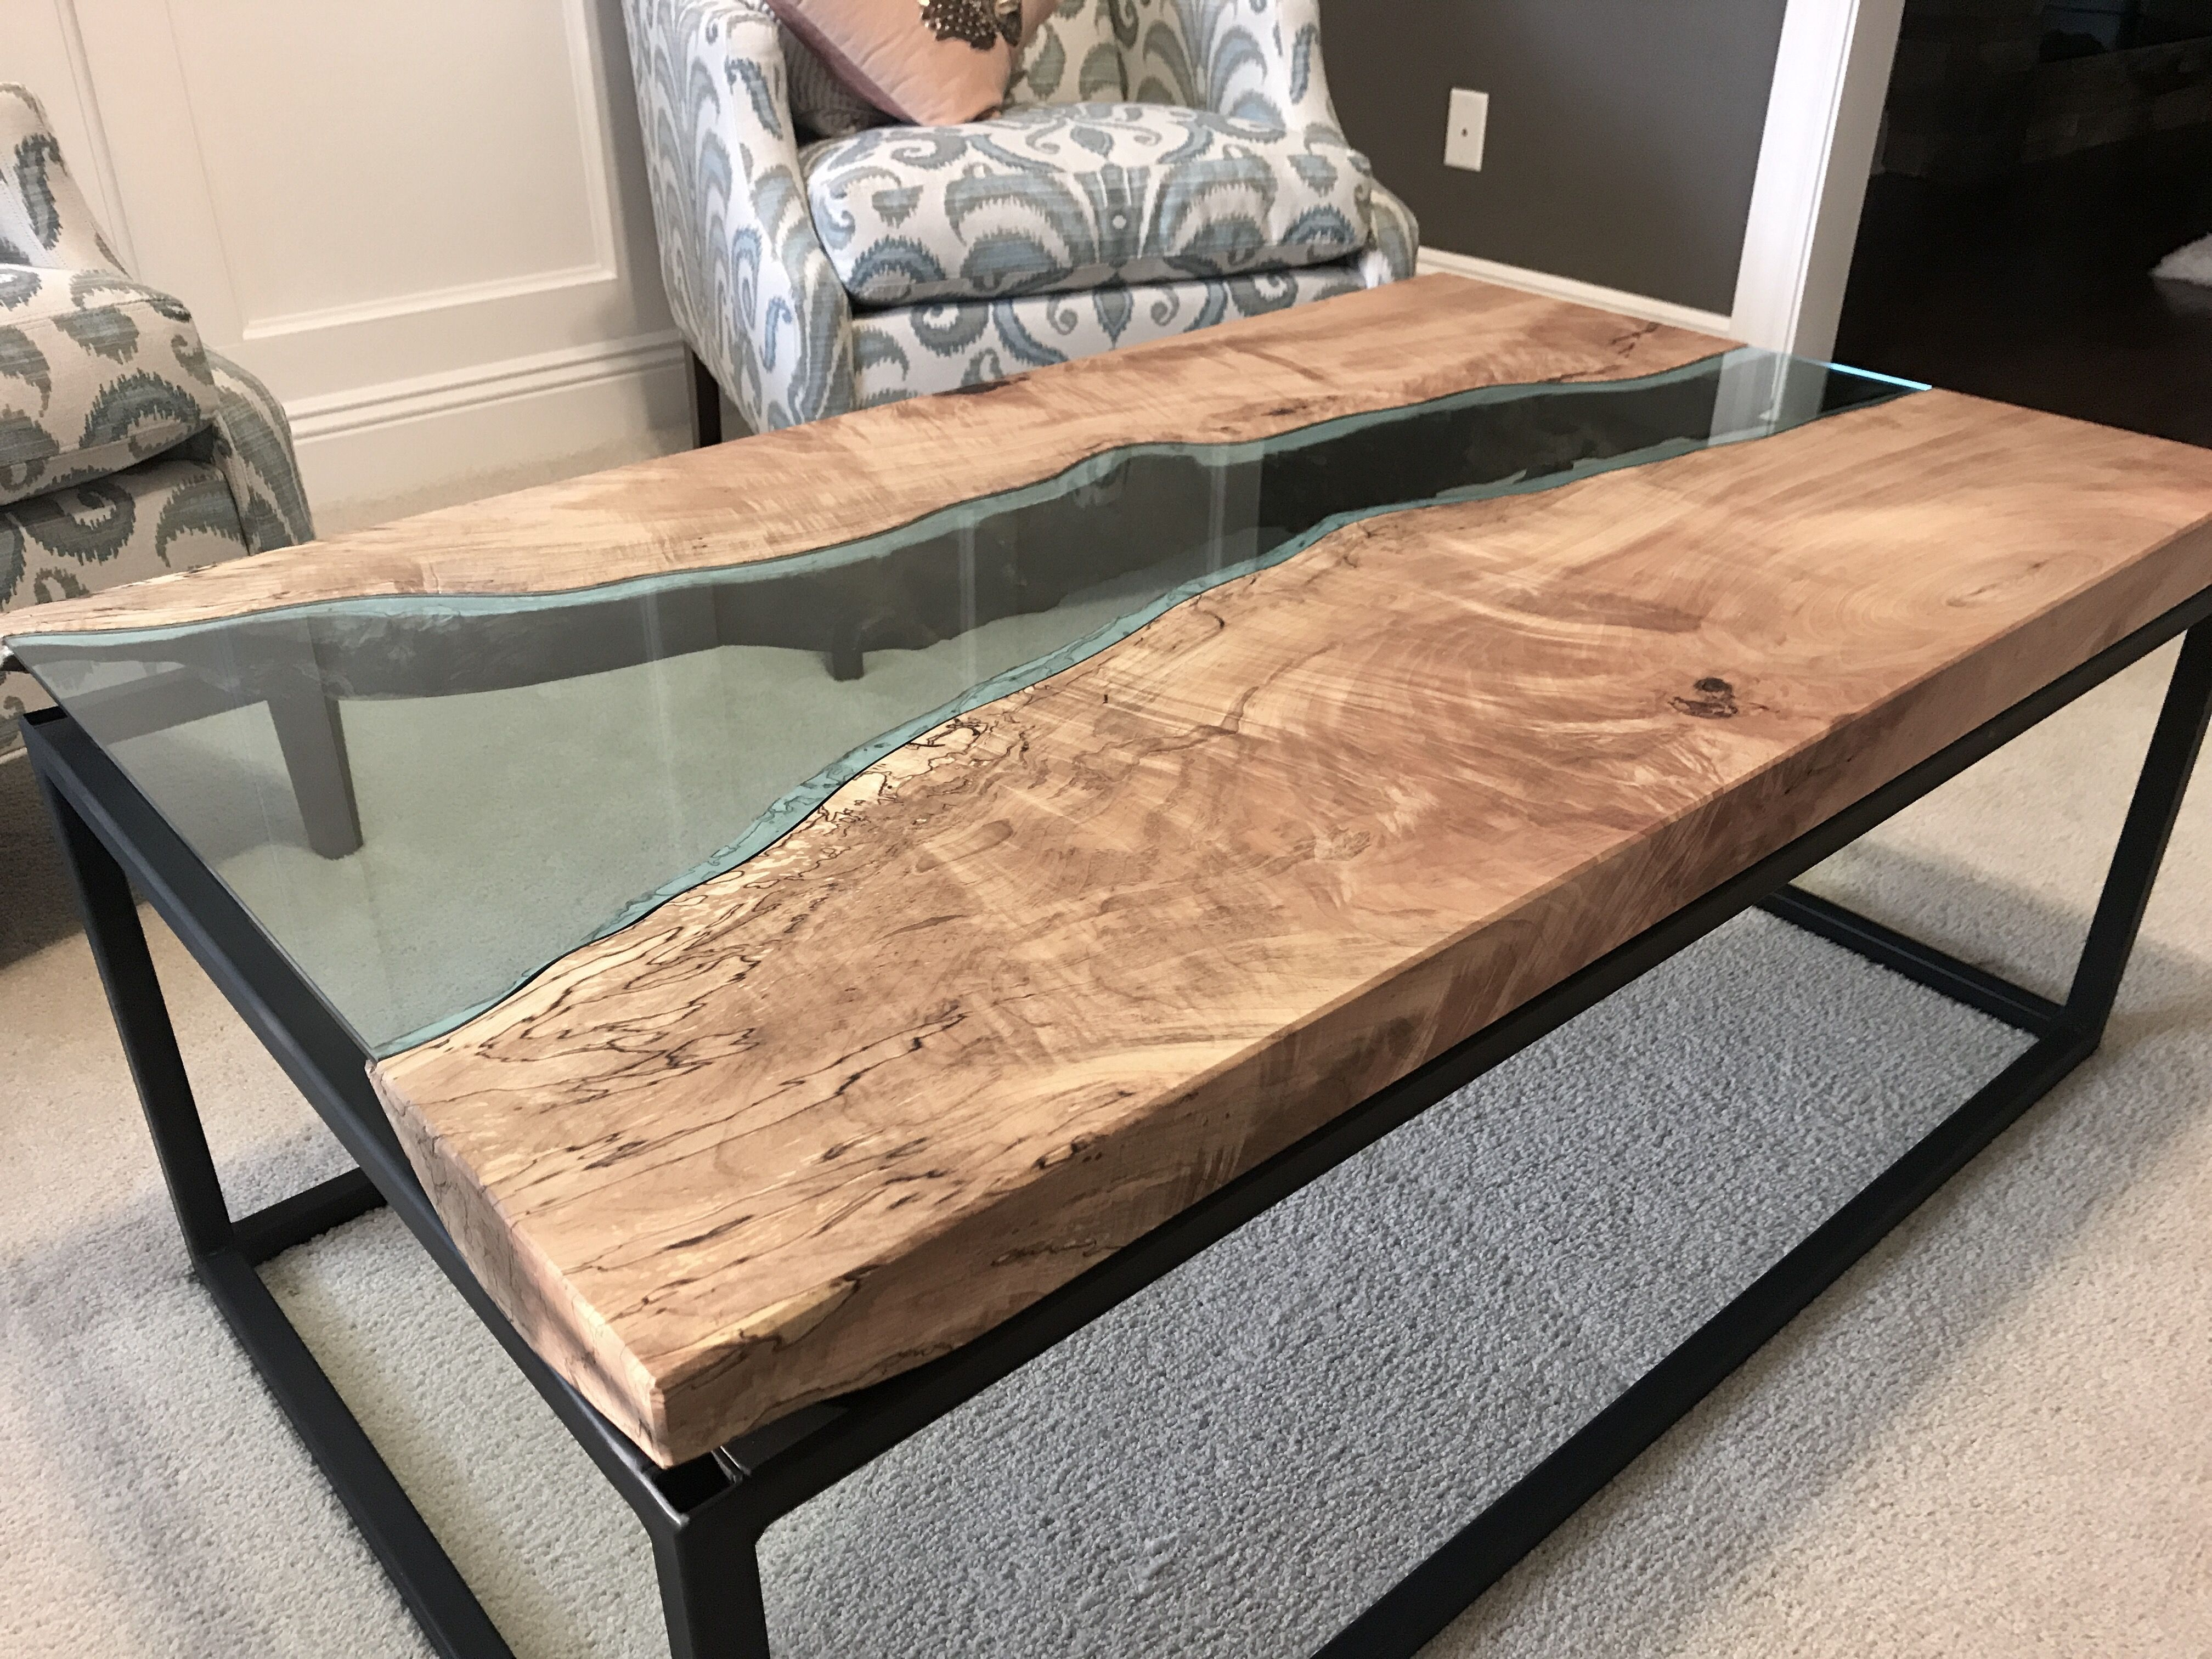 Hand Crafted Maple River Glass Coffee Table With Black Powder Coated Steel Base By Villella Custom Woodworking Custommade Com